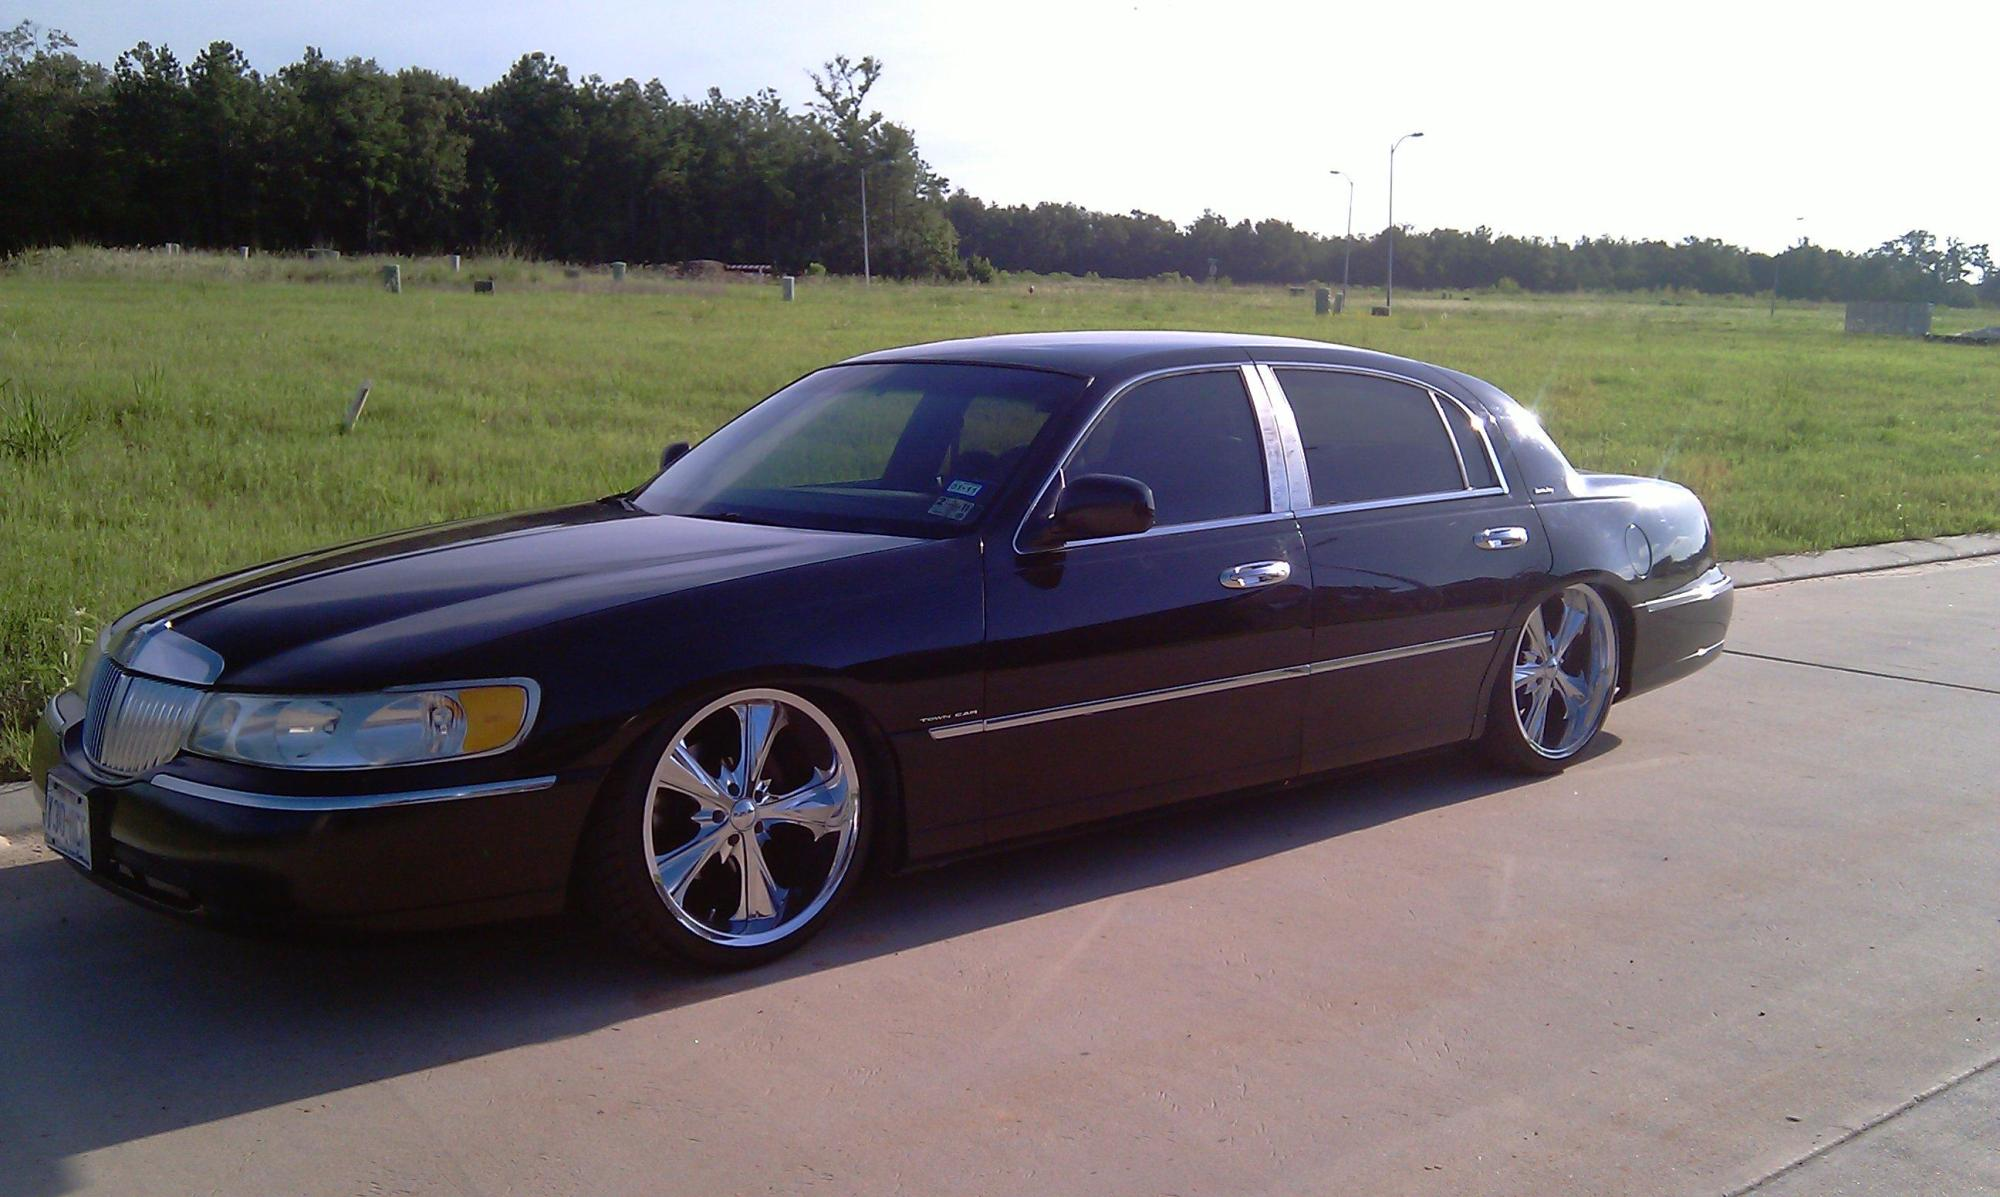 hight resolution of altiman 2 1999 lincoln town car 38999554002 original